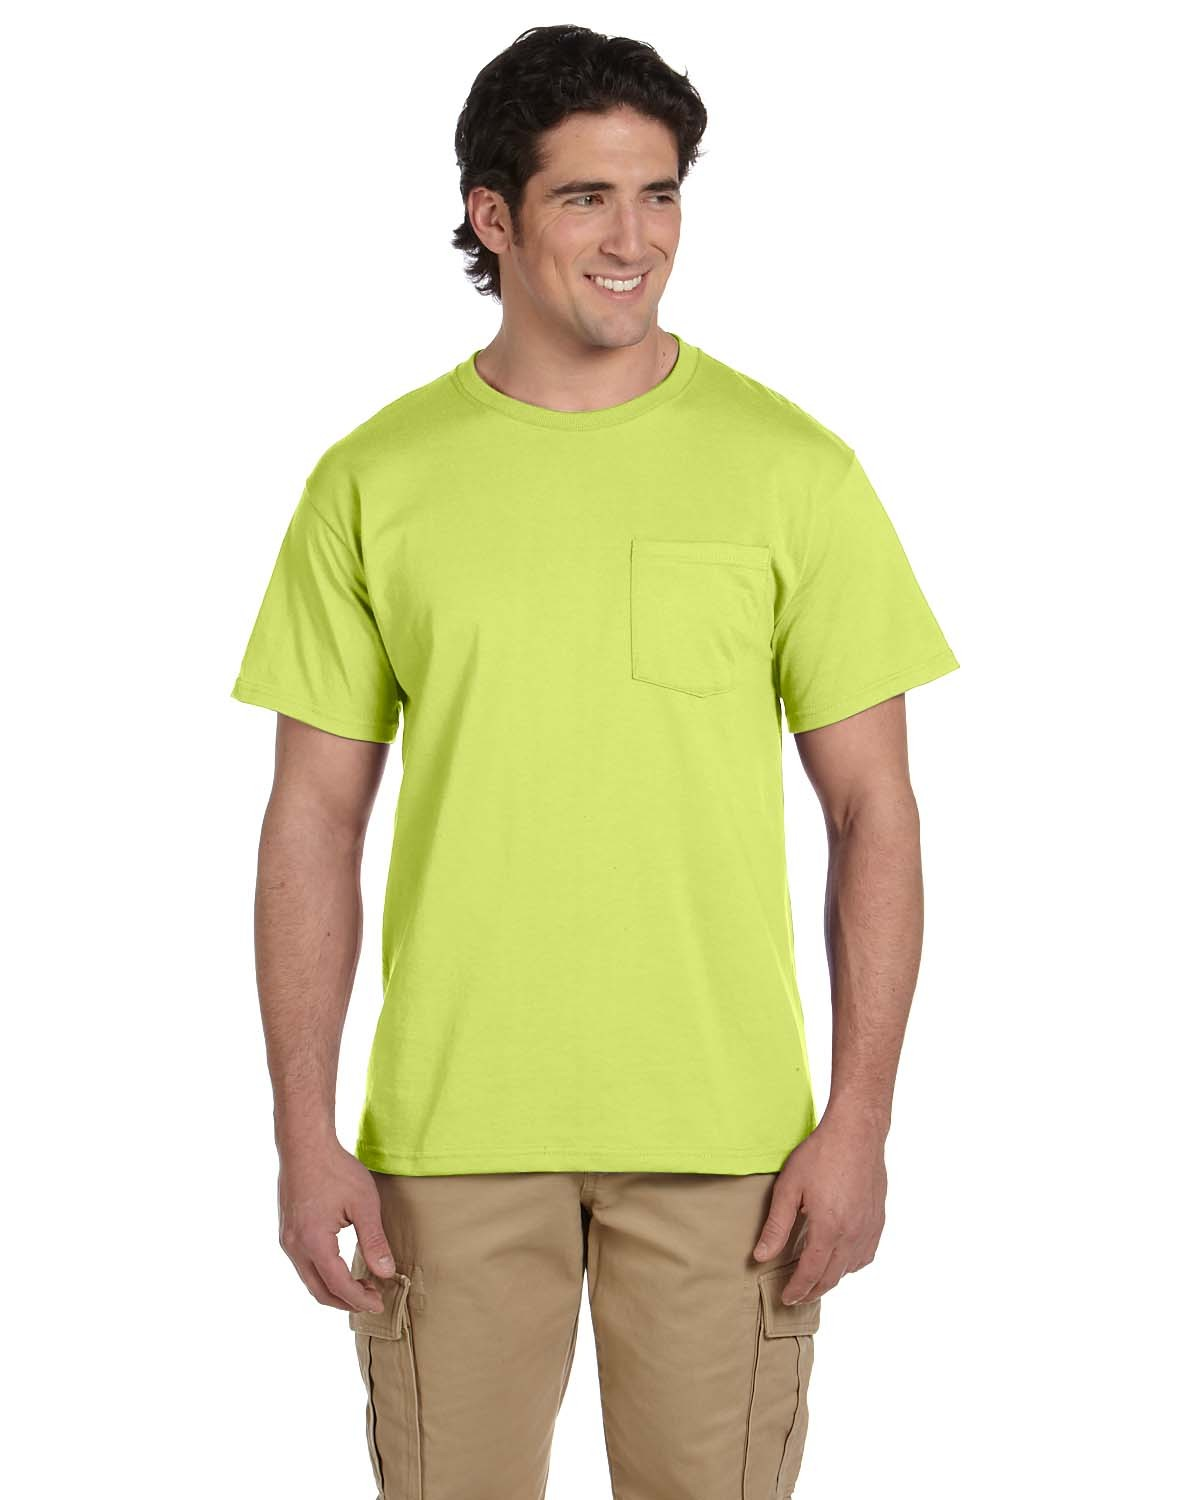 29P Jerzees SAFETY GREEN